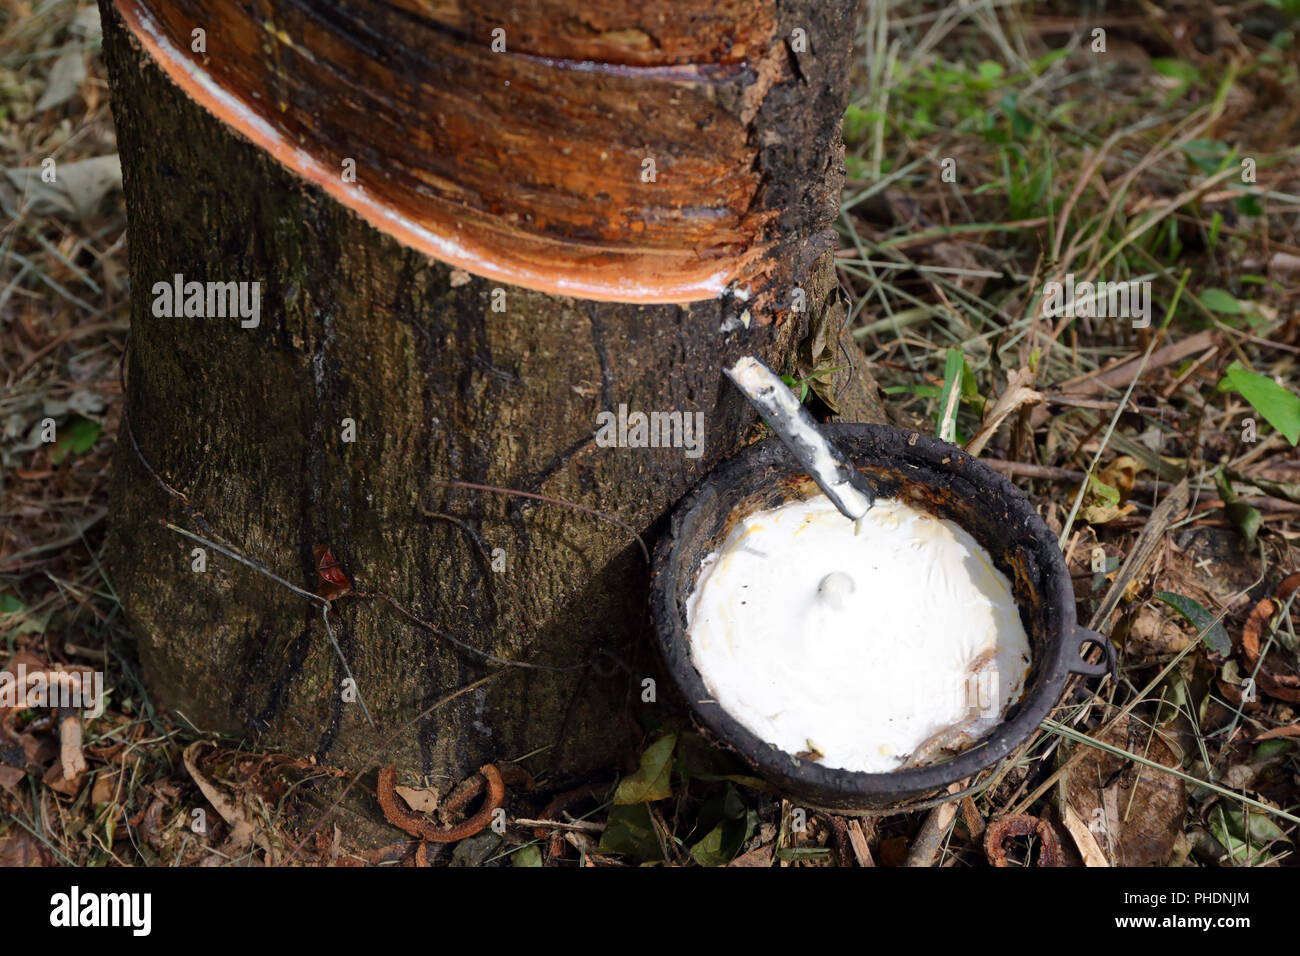 Natural latex dripping from rubber tree - Stock Image